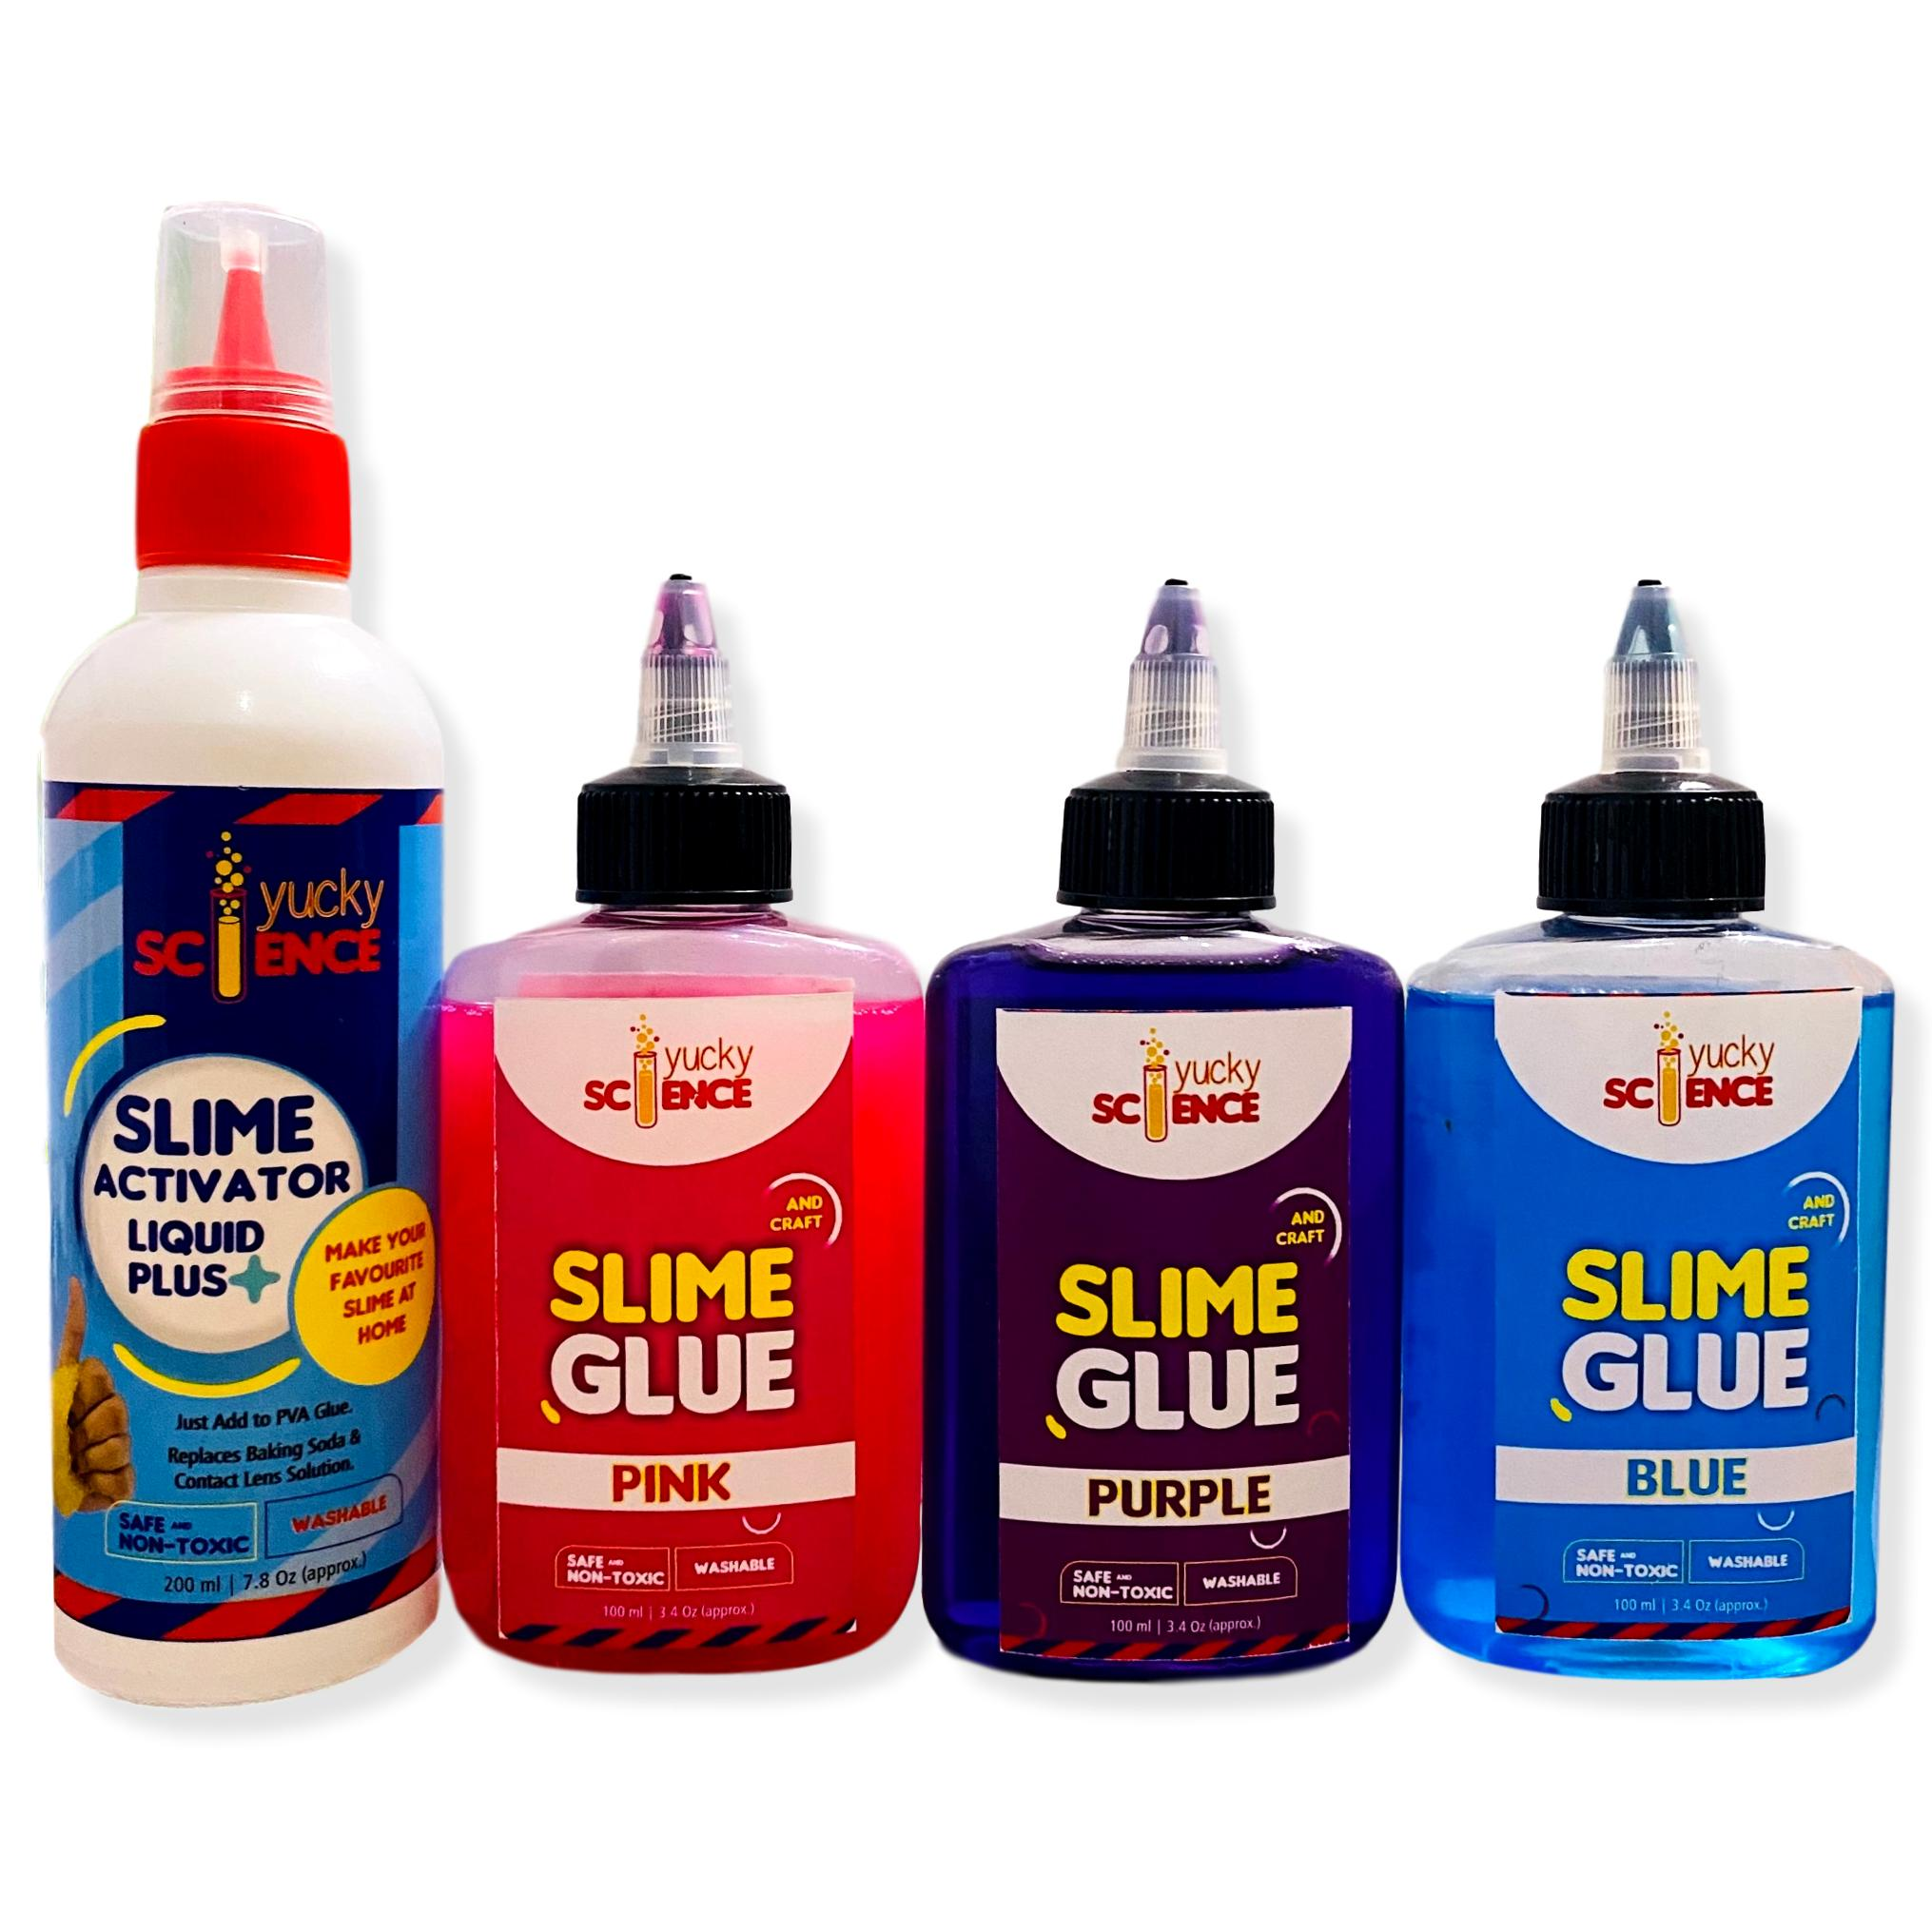 Slime and Craft Assorted Color Glue. (Purple/Pink/Blue, Pack of 3 Bottles, 100 ml Each) + 1 Bottle Slime Activator Liquid Plus Clear (200 ml). Make 20+ Slimes